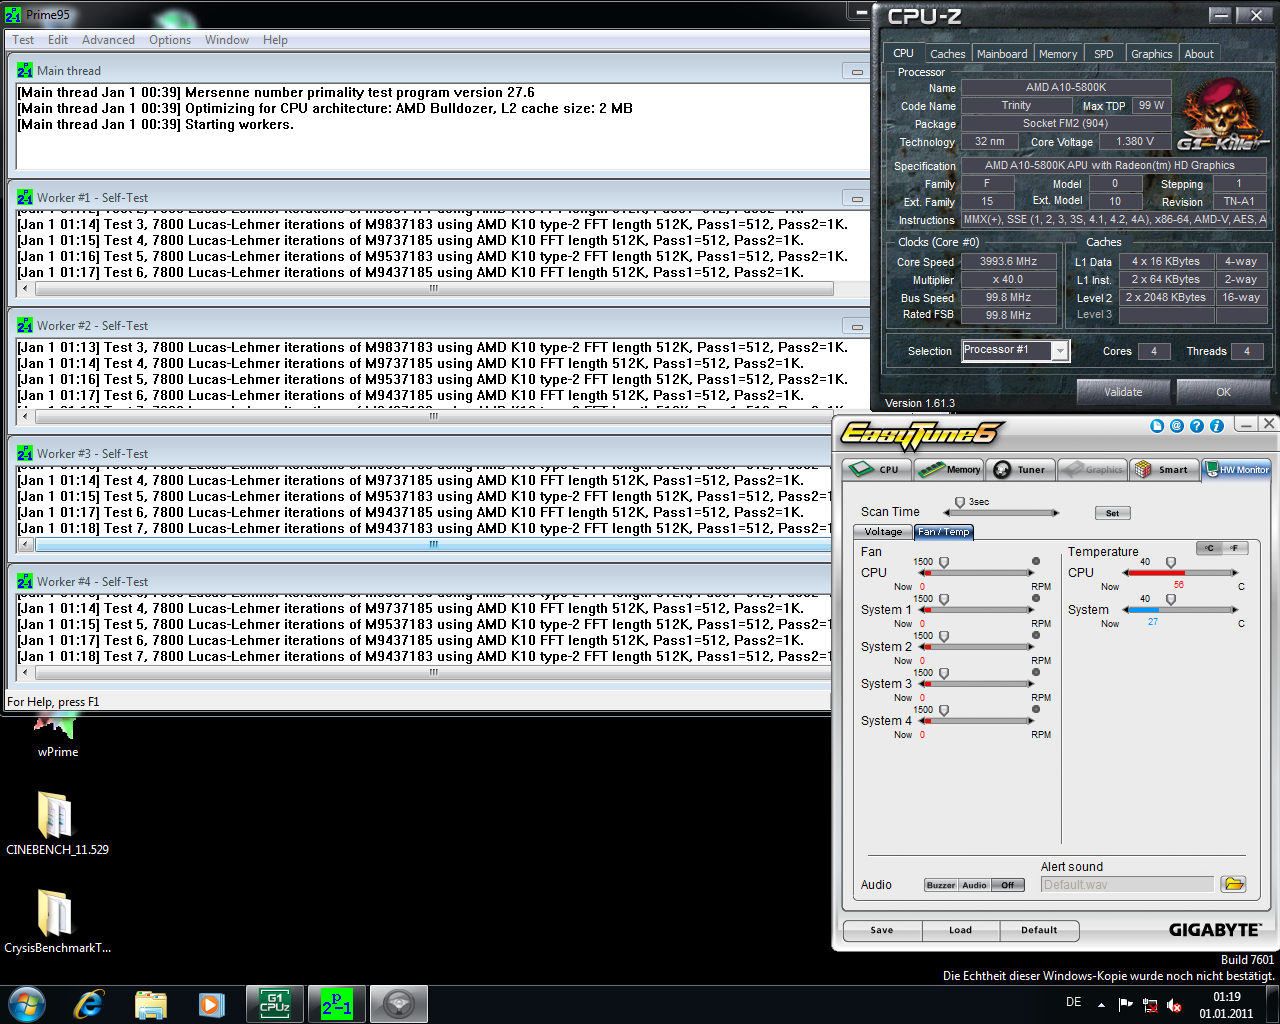 [OC-Guide] AMD Trinity - Unleash the power of A10-5800K on GIGABYTE F2A85X-UP4-4000.png